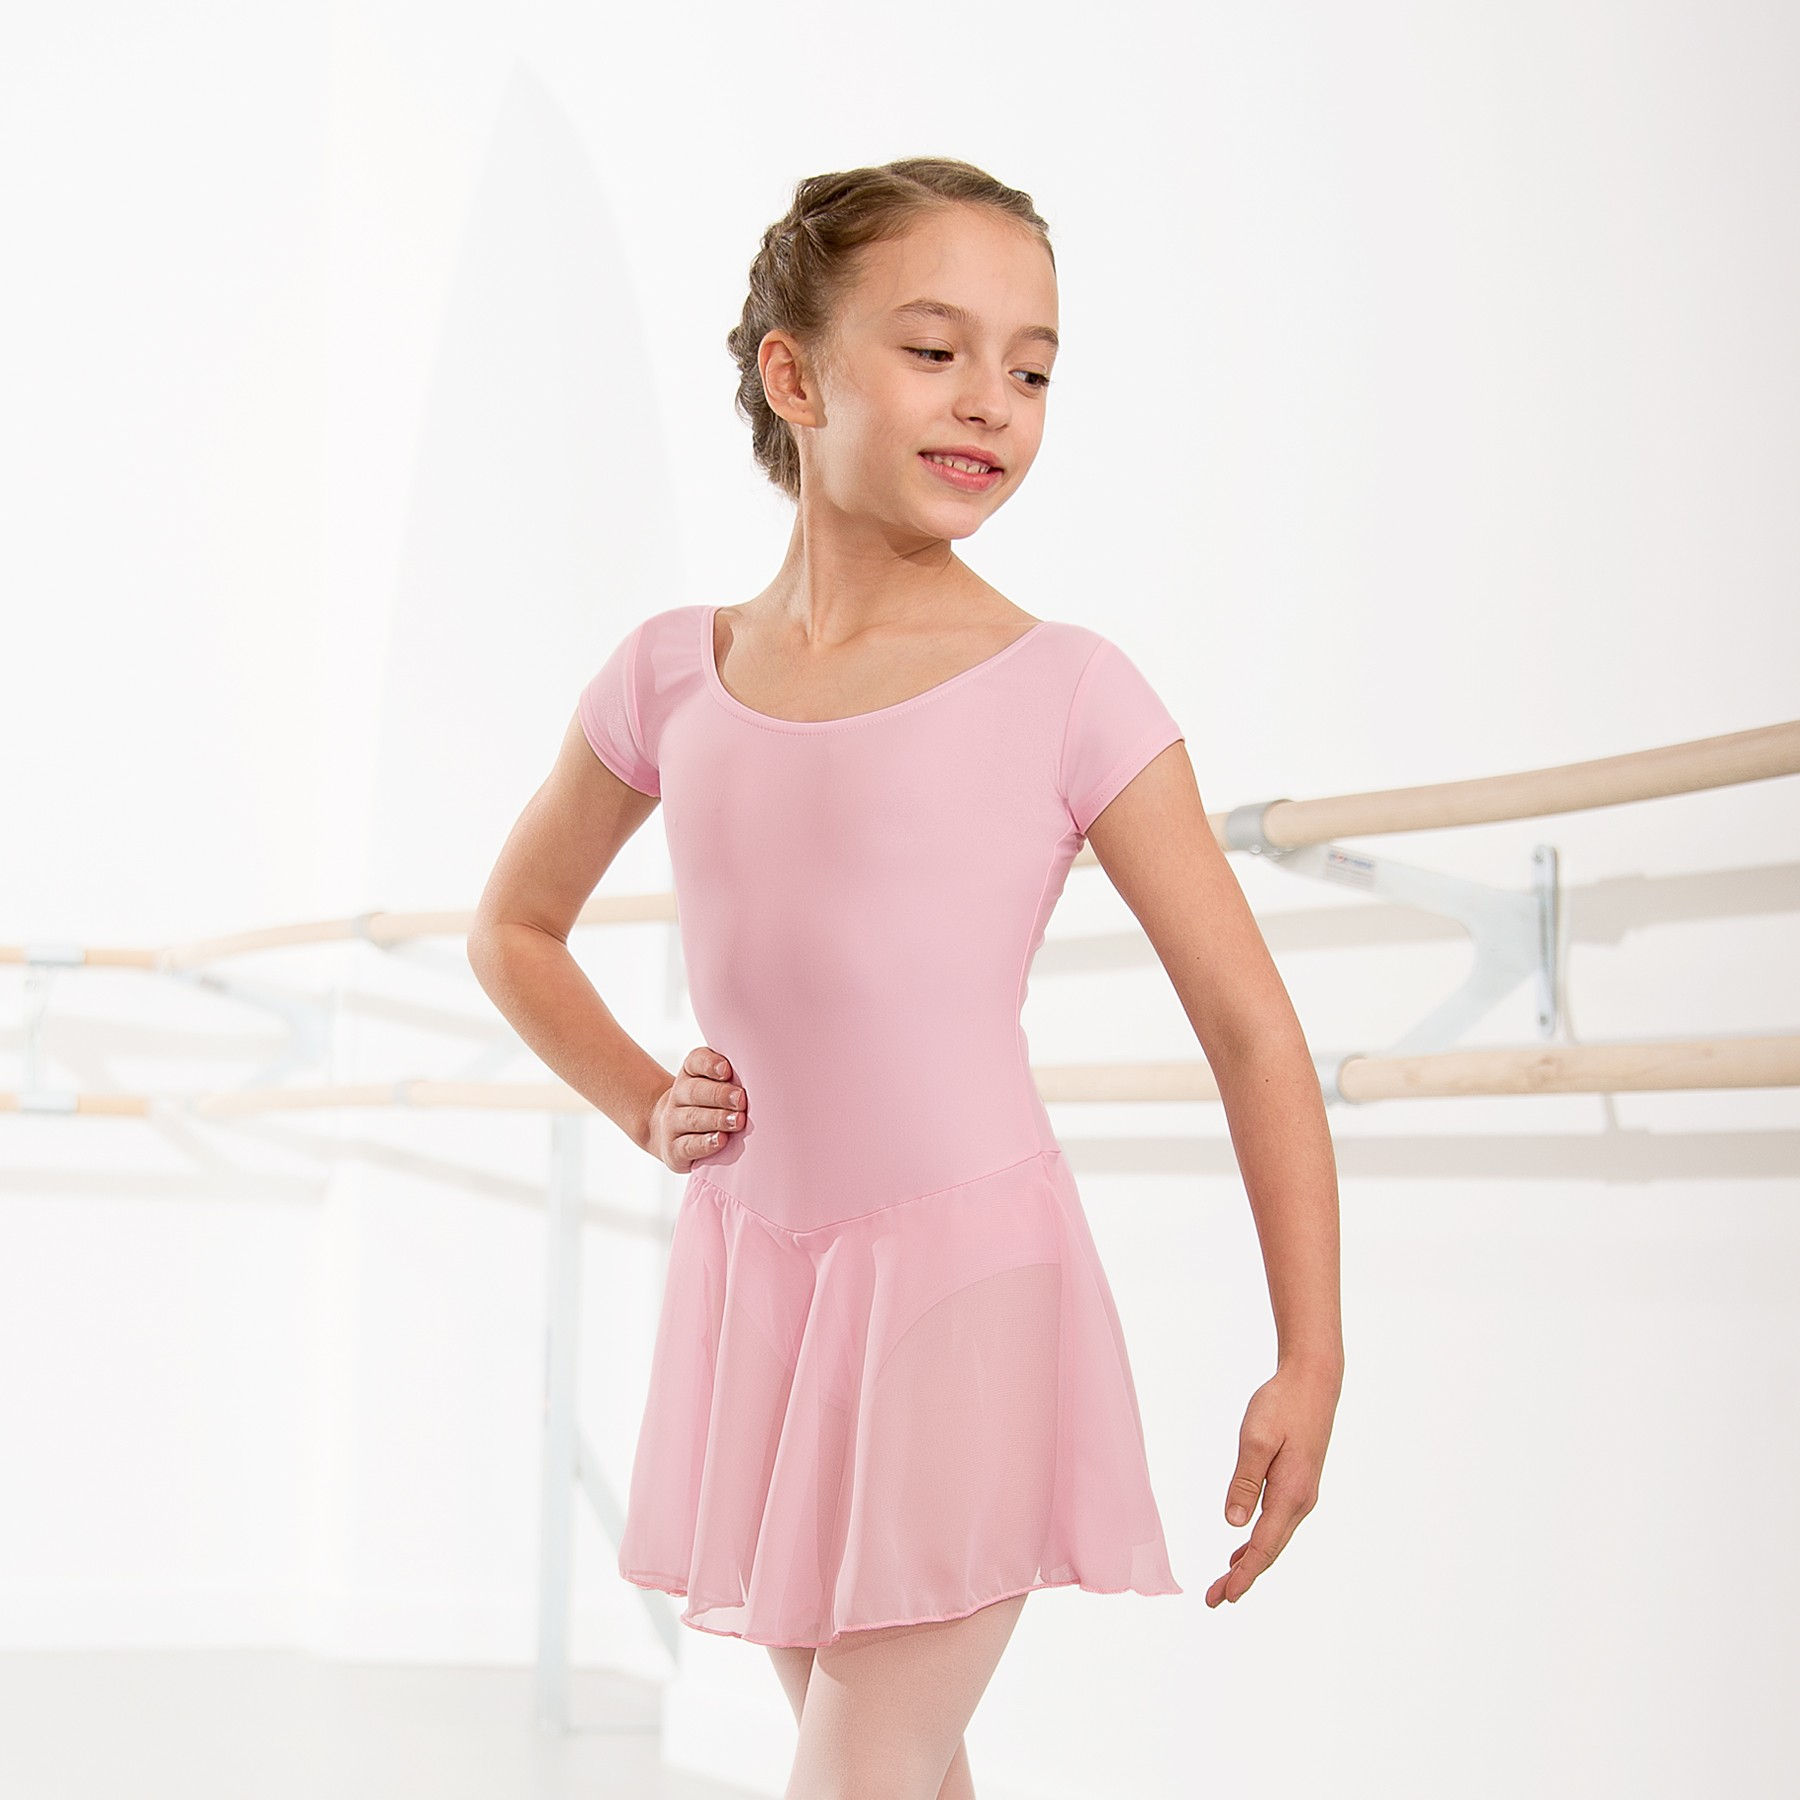 Milly Voile Skirted Cap Sleeve Leotard (Light Pink)